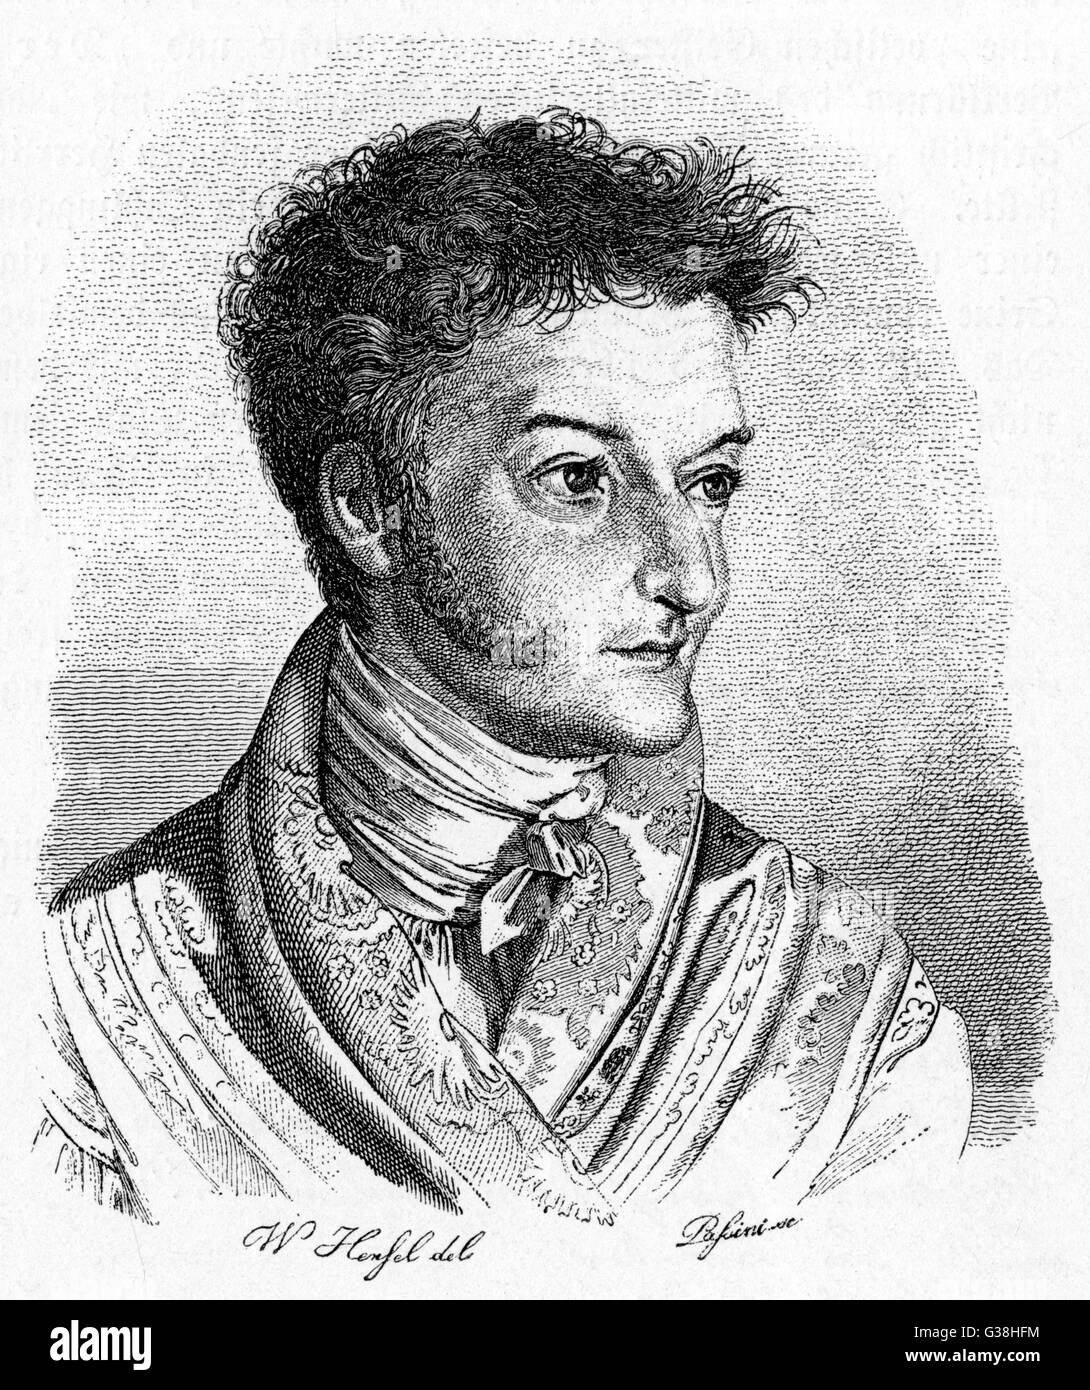 ETW HOFFMANN also known as ETA HOFFMANN (he took the  name Amadeus when composing) German Romantic writer and  composer - Stock Image